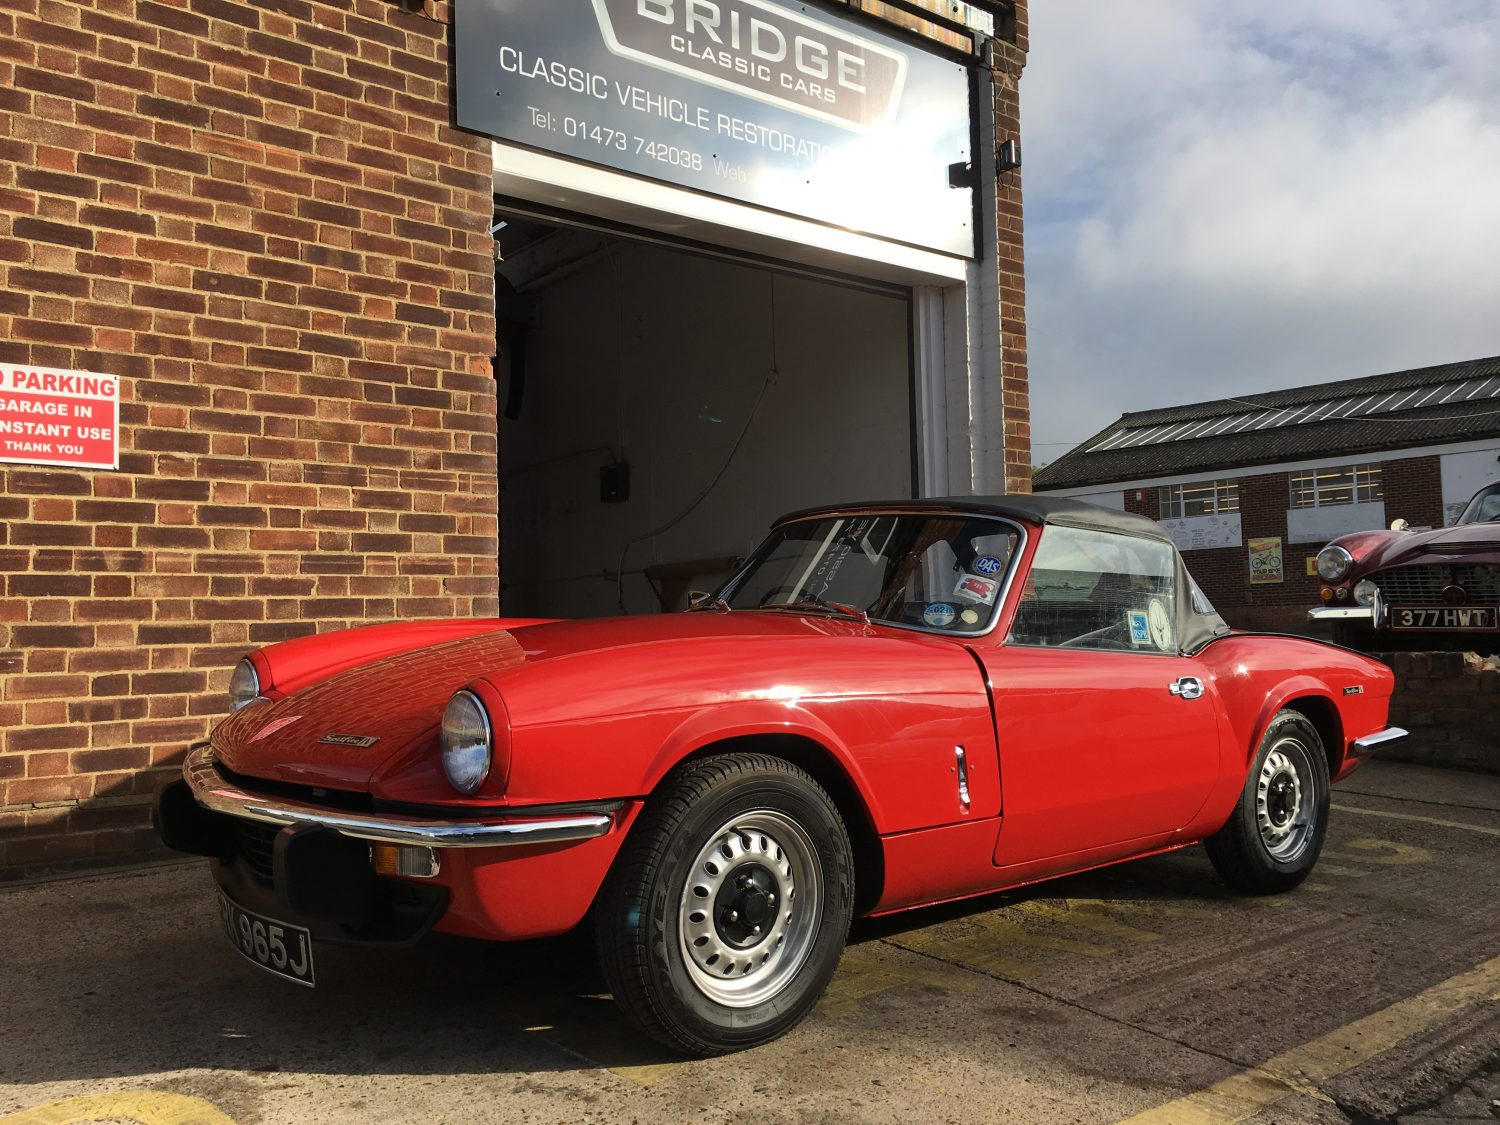 1971 triumph spitfire now on her way home bridge classic cars. Black Bedroom Furniture Sets. Home Design Ideas